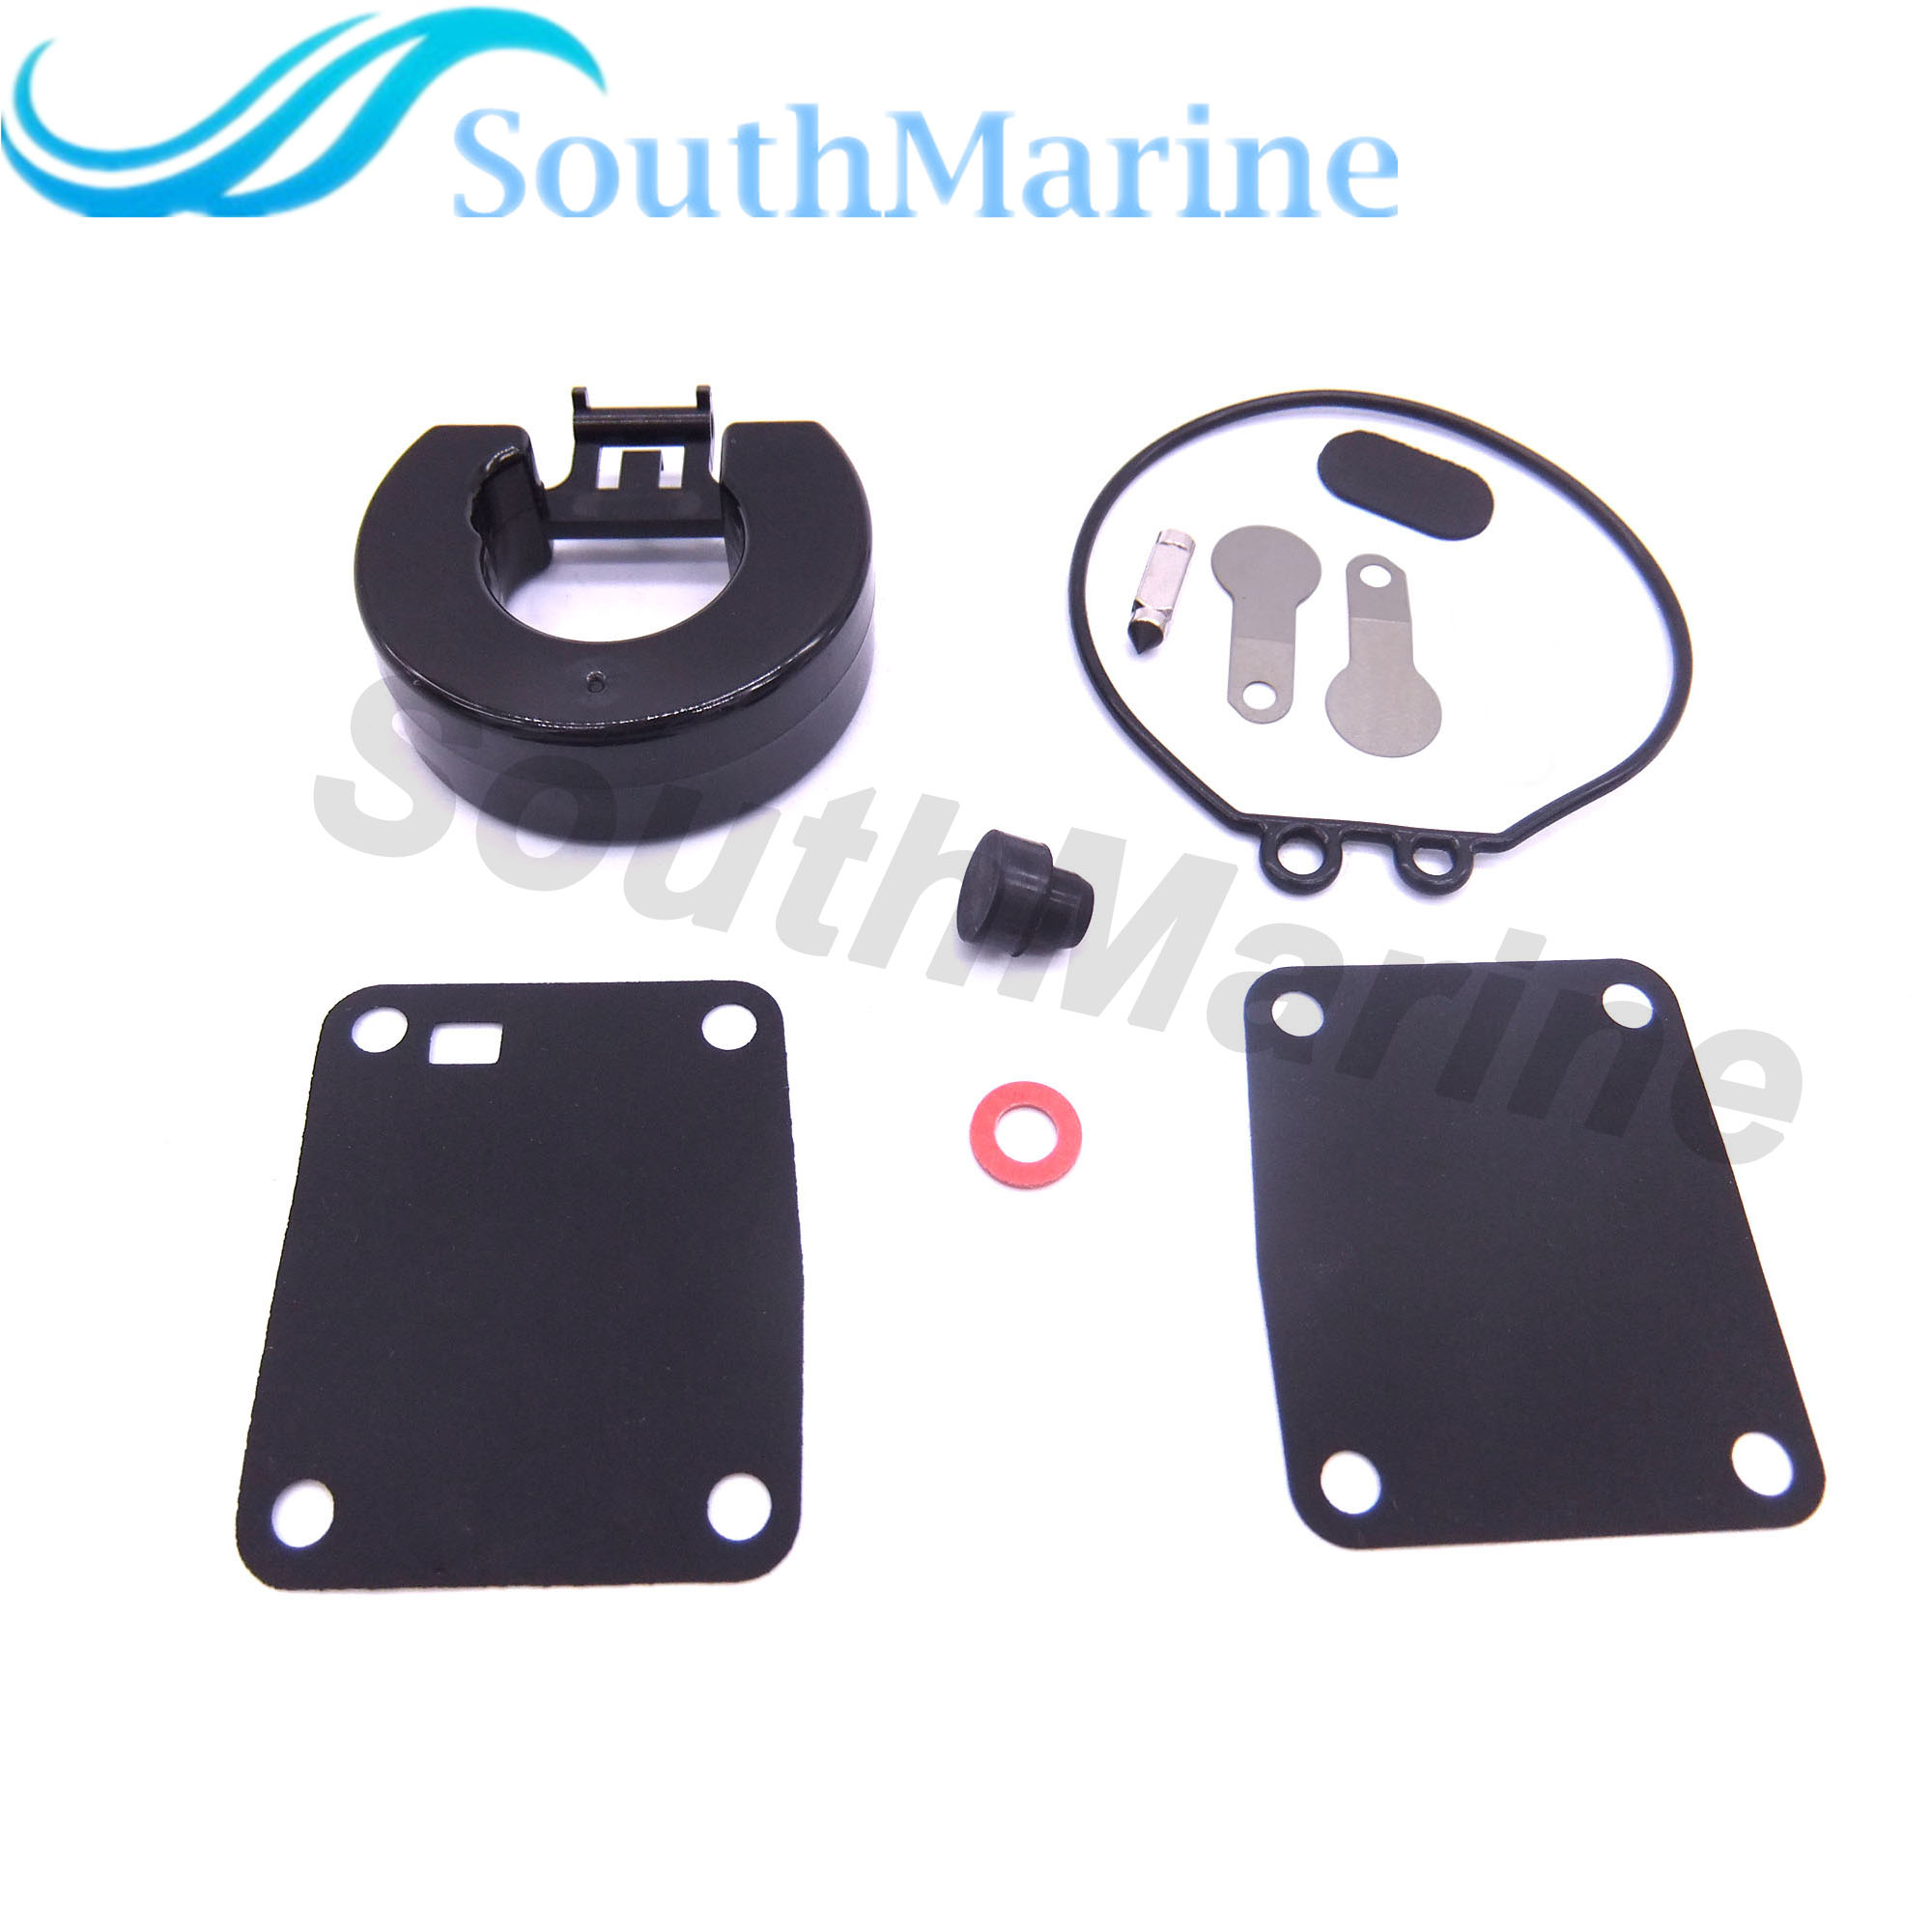 Boat Engine Carburetor Repair Kit For Yamaha 3HP 6HP 8HP Outboard Engine 6G1-W0093-00-00 18-7765